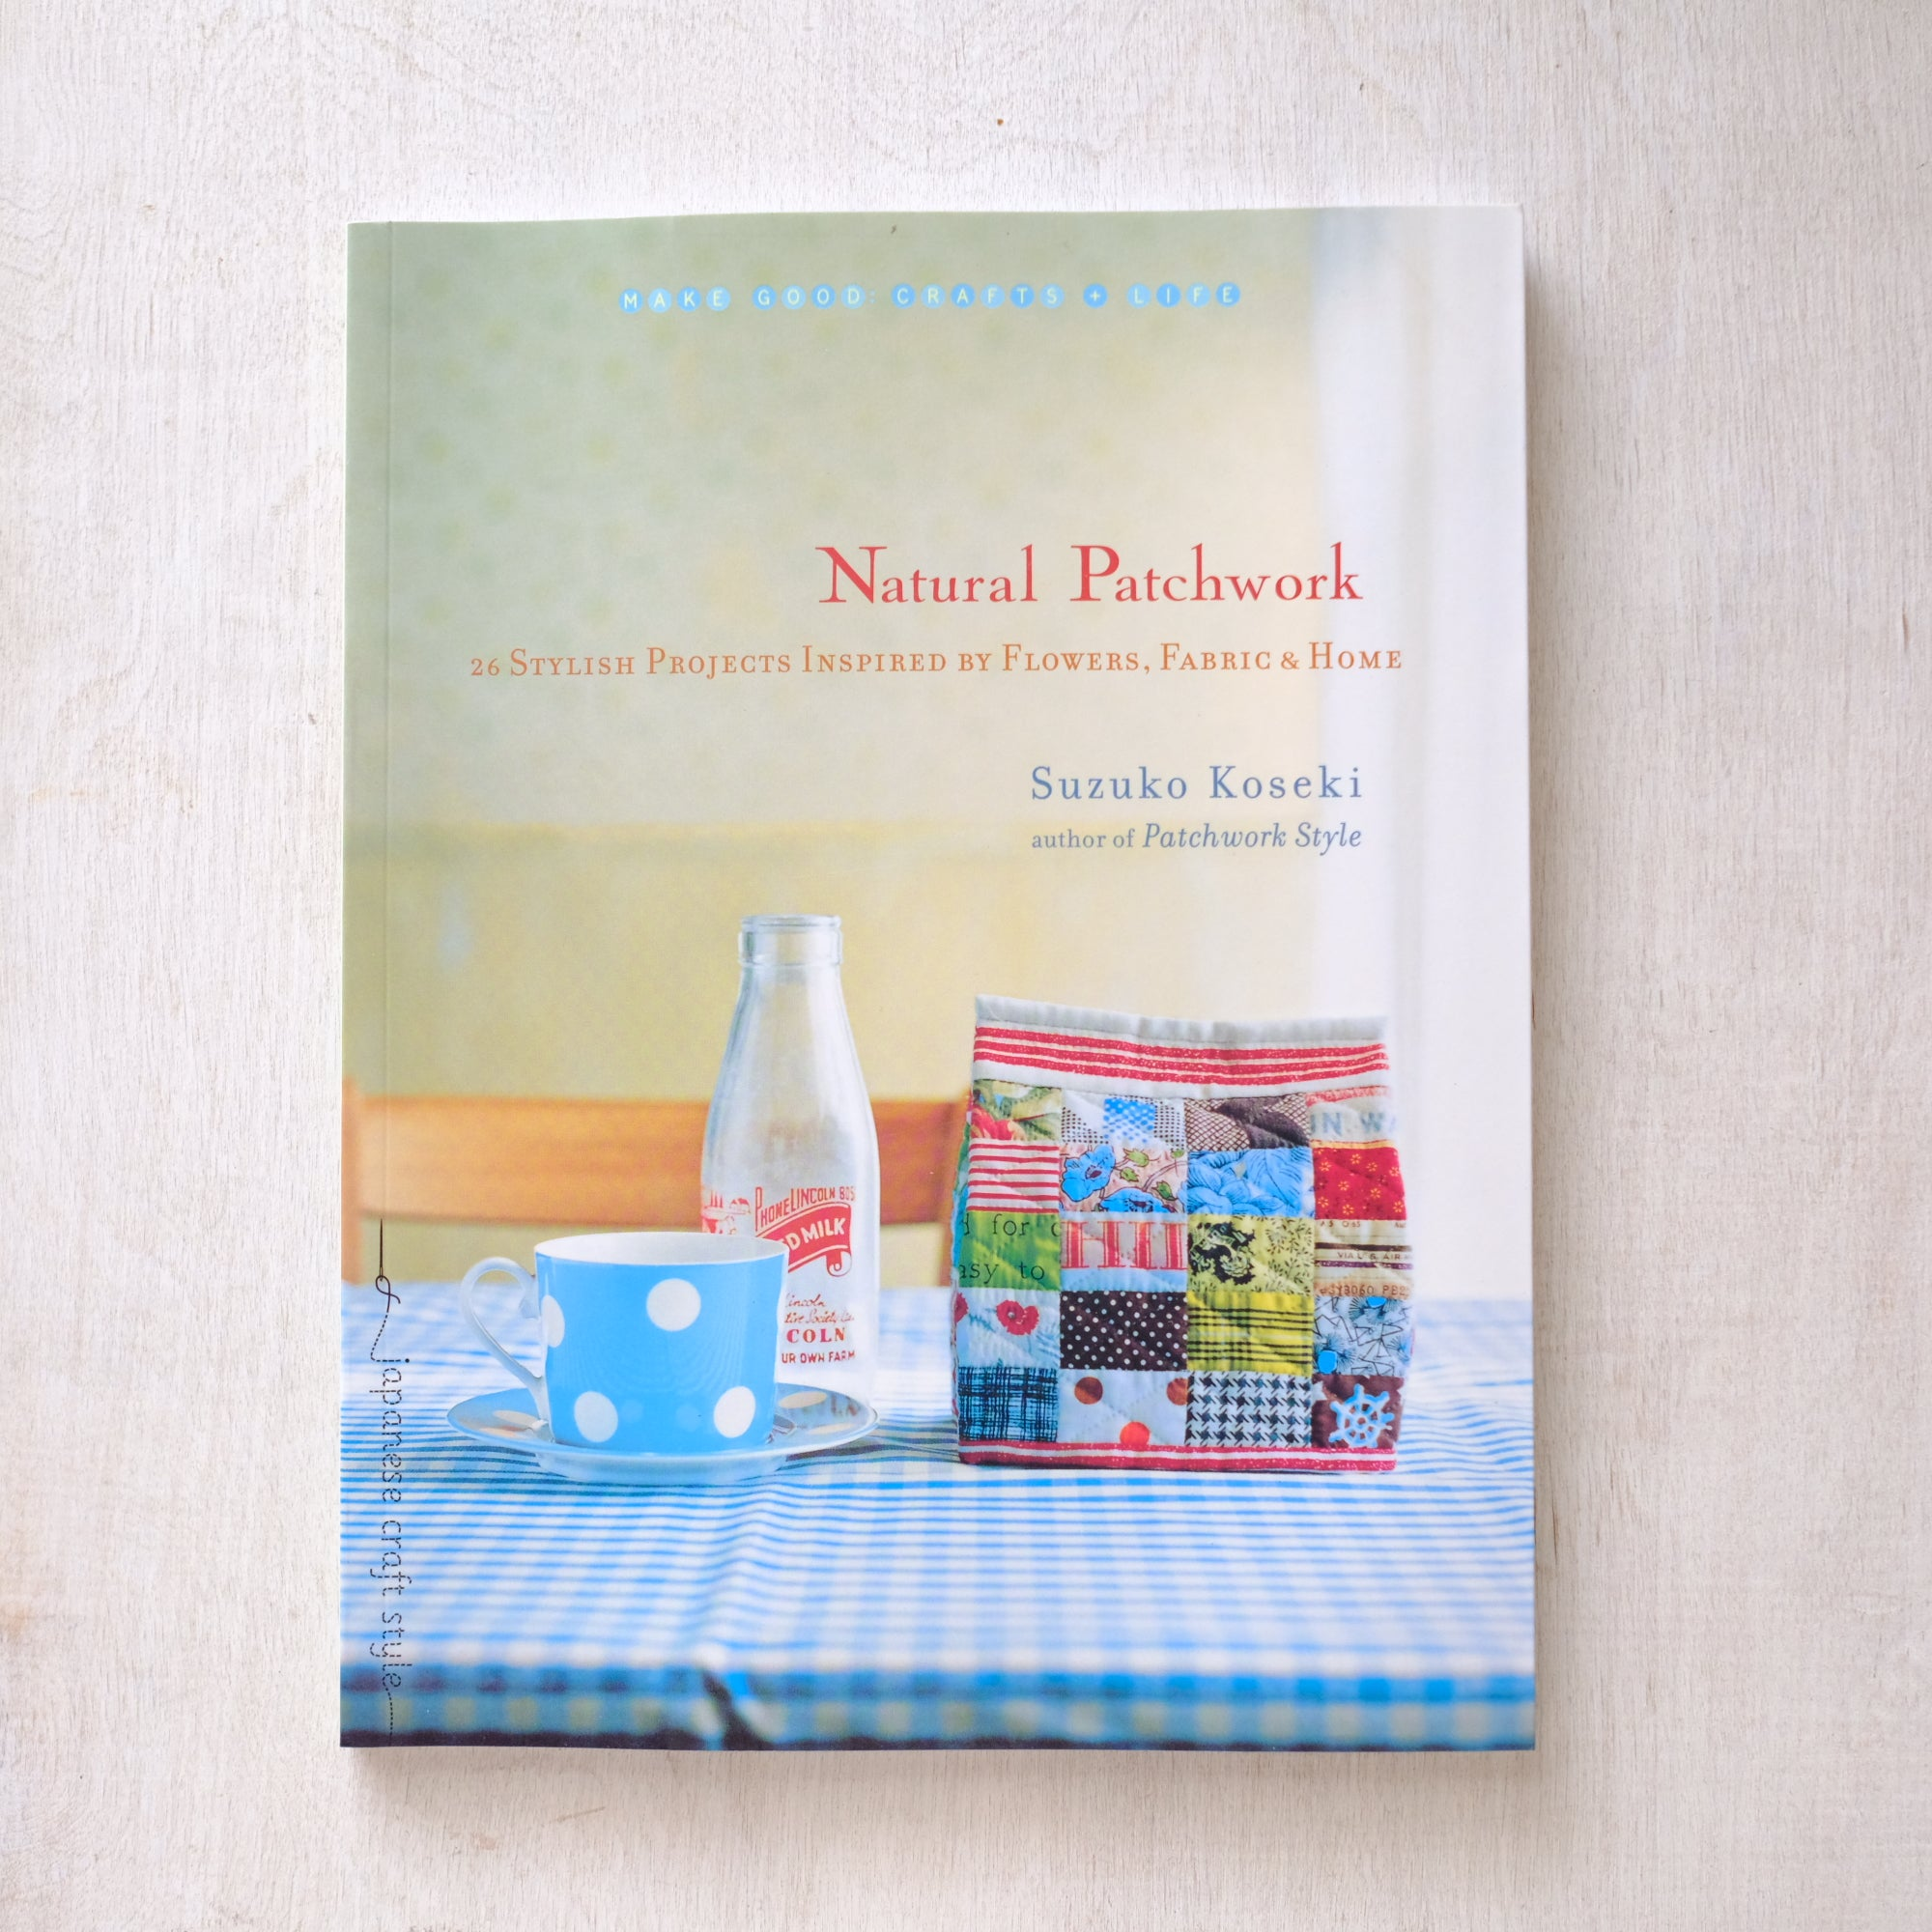 Natural Patchwork: 26 Stylish Projects Inspired by Flowers, Fabric & Home by Suzuko Koseki - New!